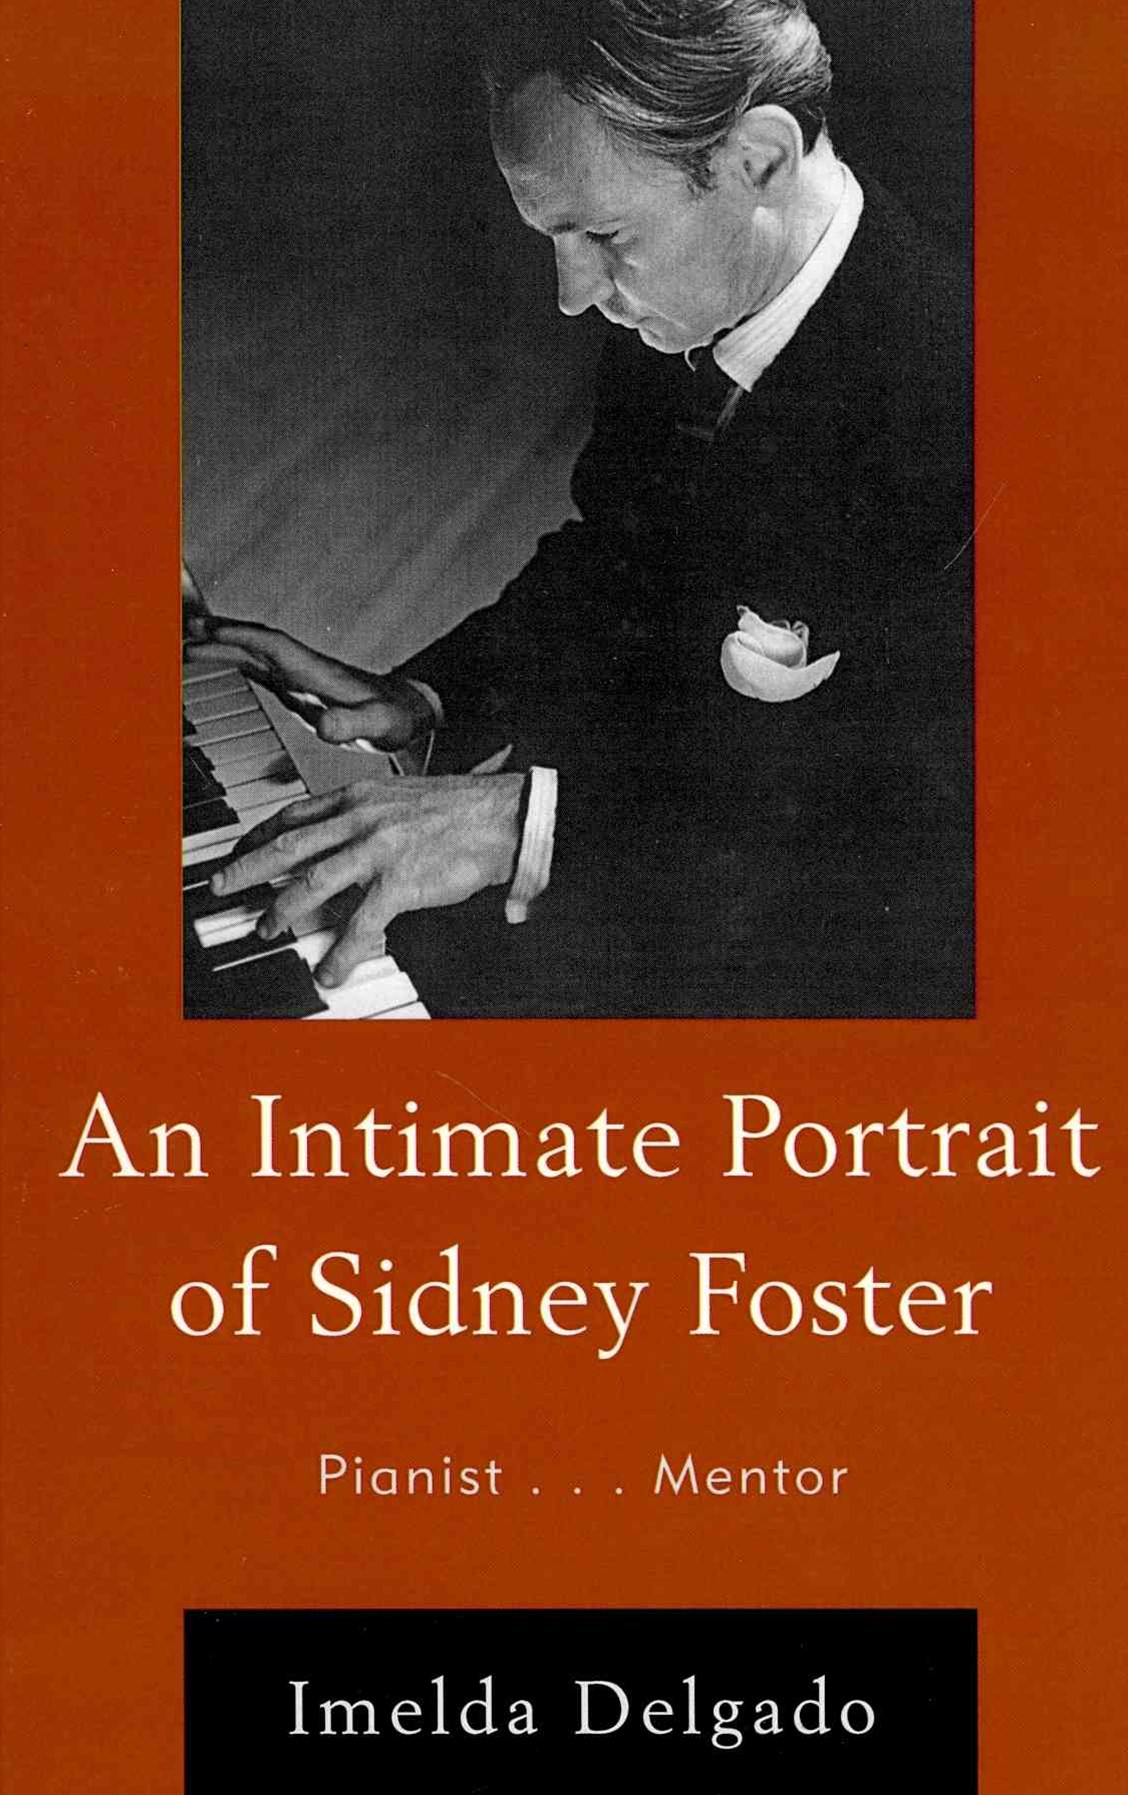 Intimate Portrait of Sidney Foster